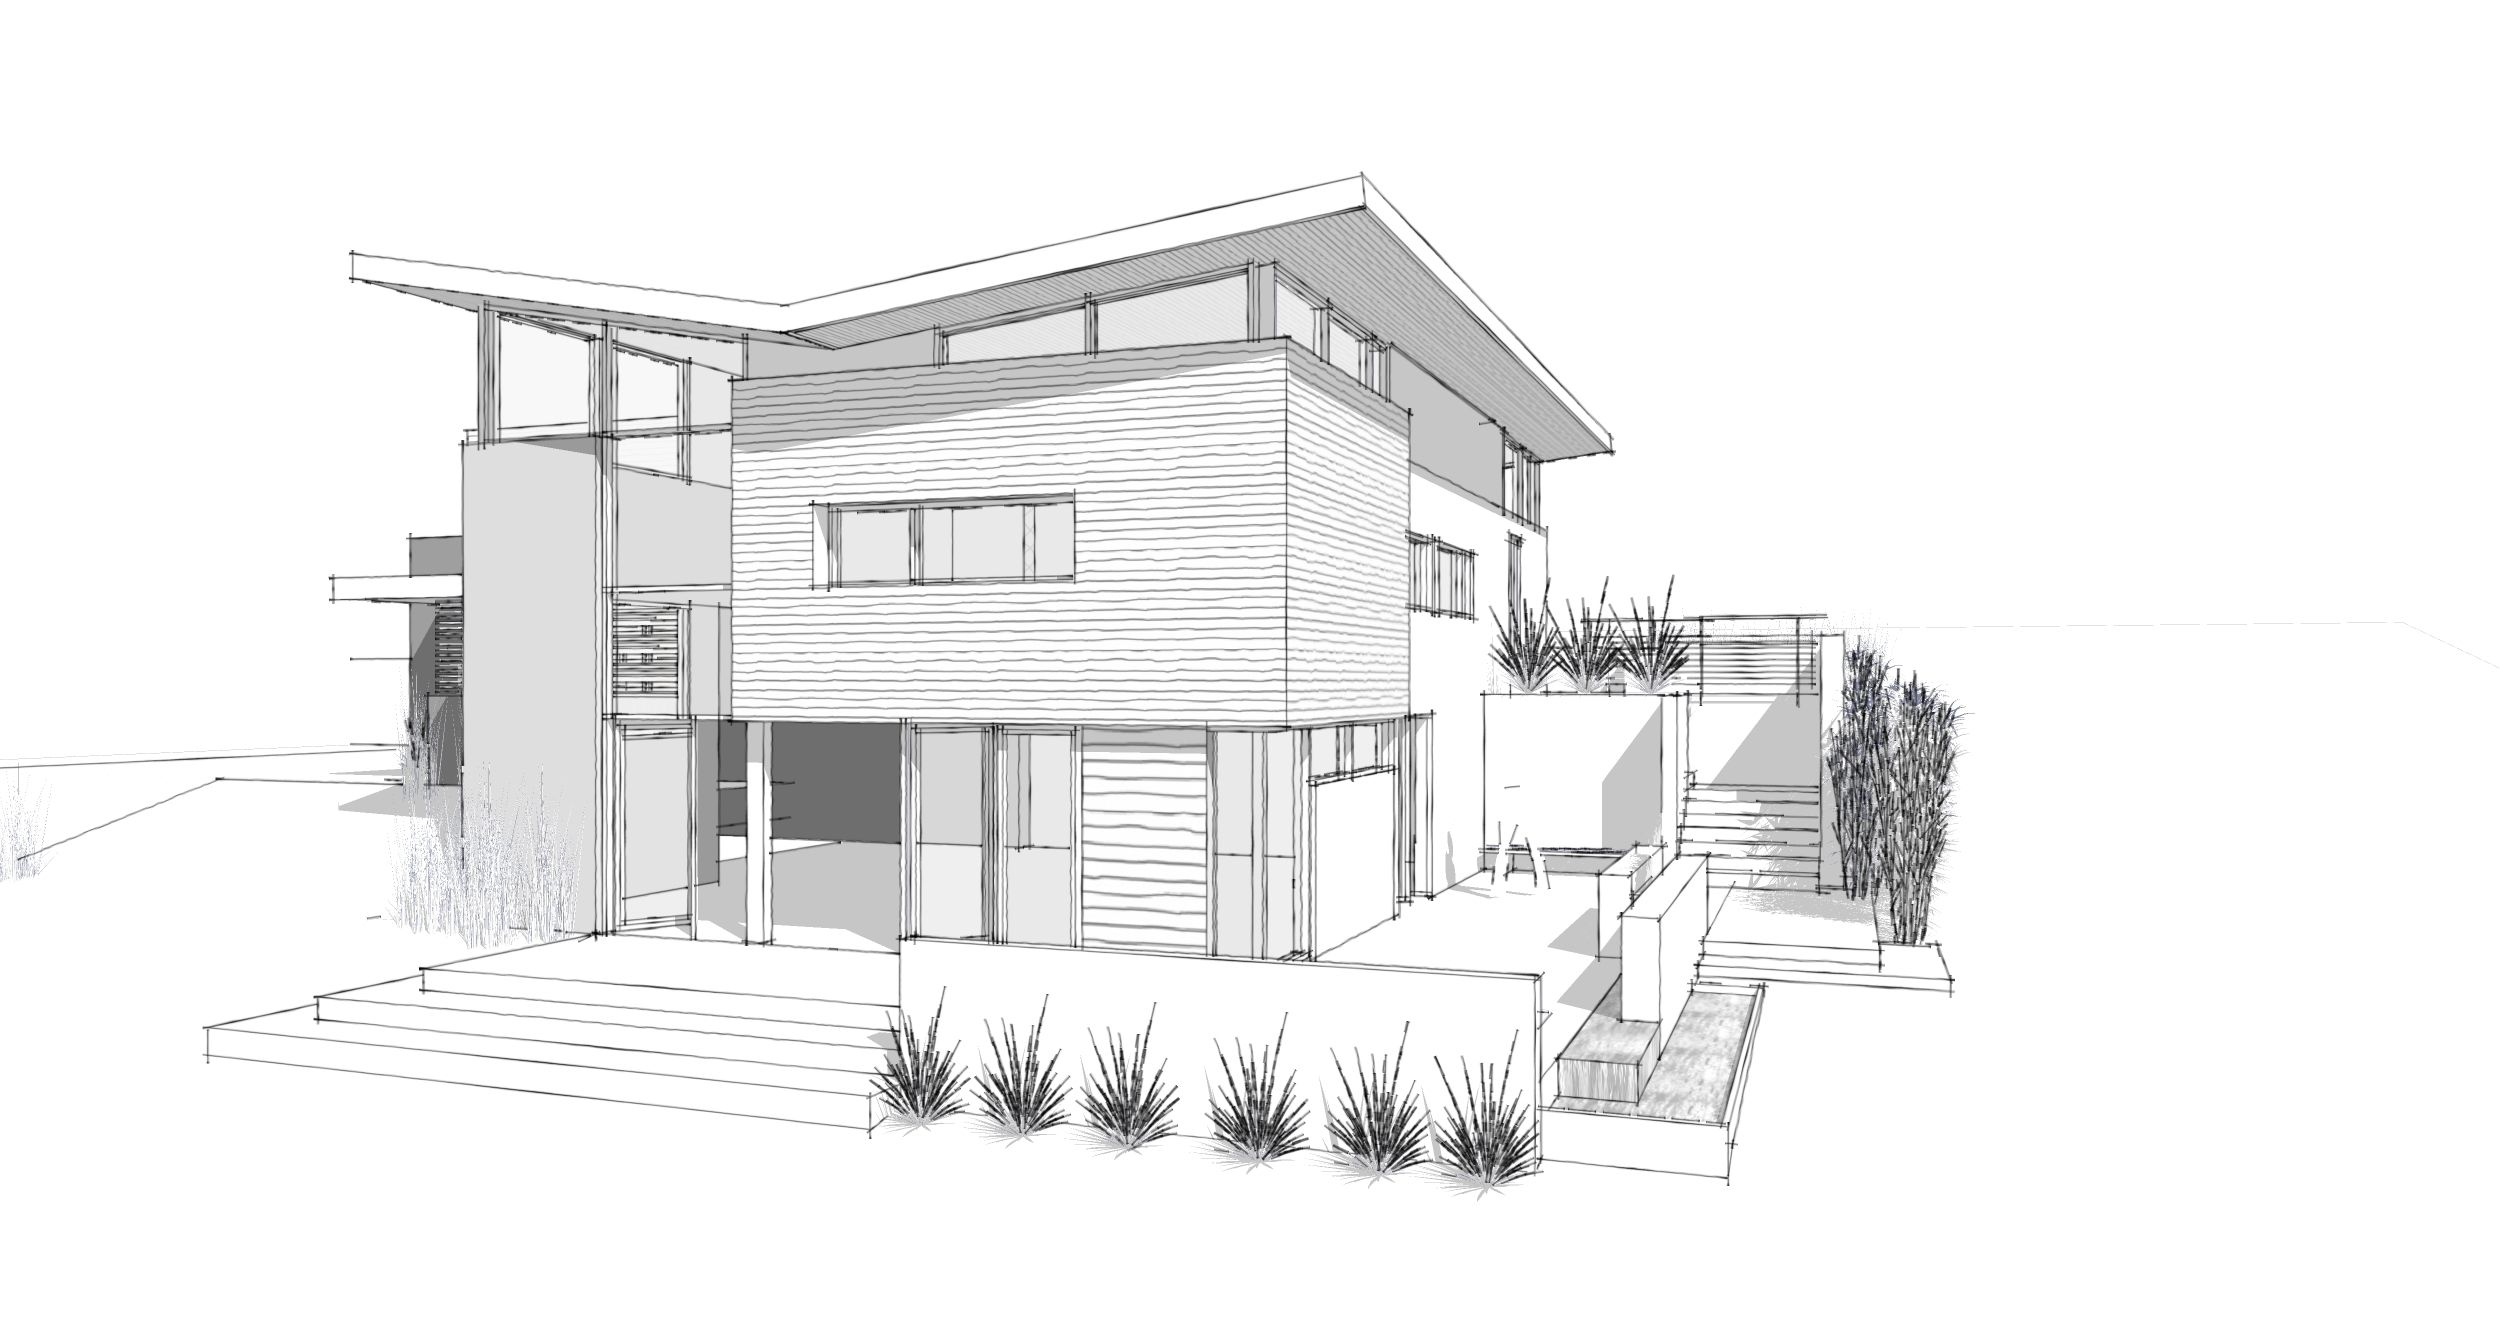 Modern home architecture sketches design ideas 13435 for Architects house plans